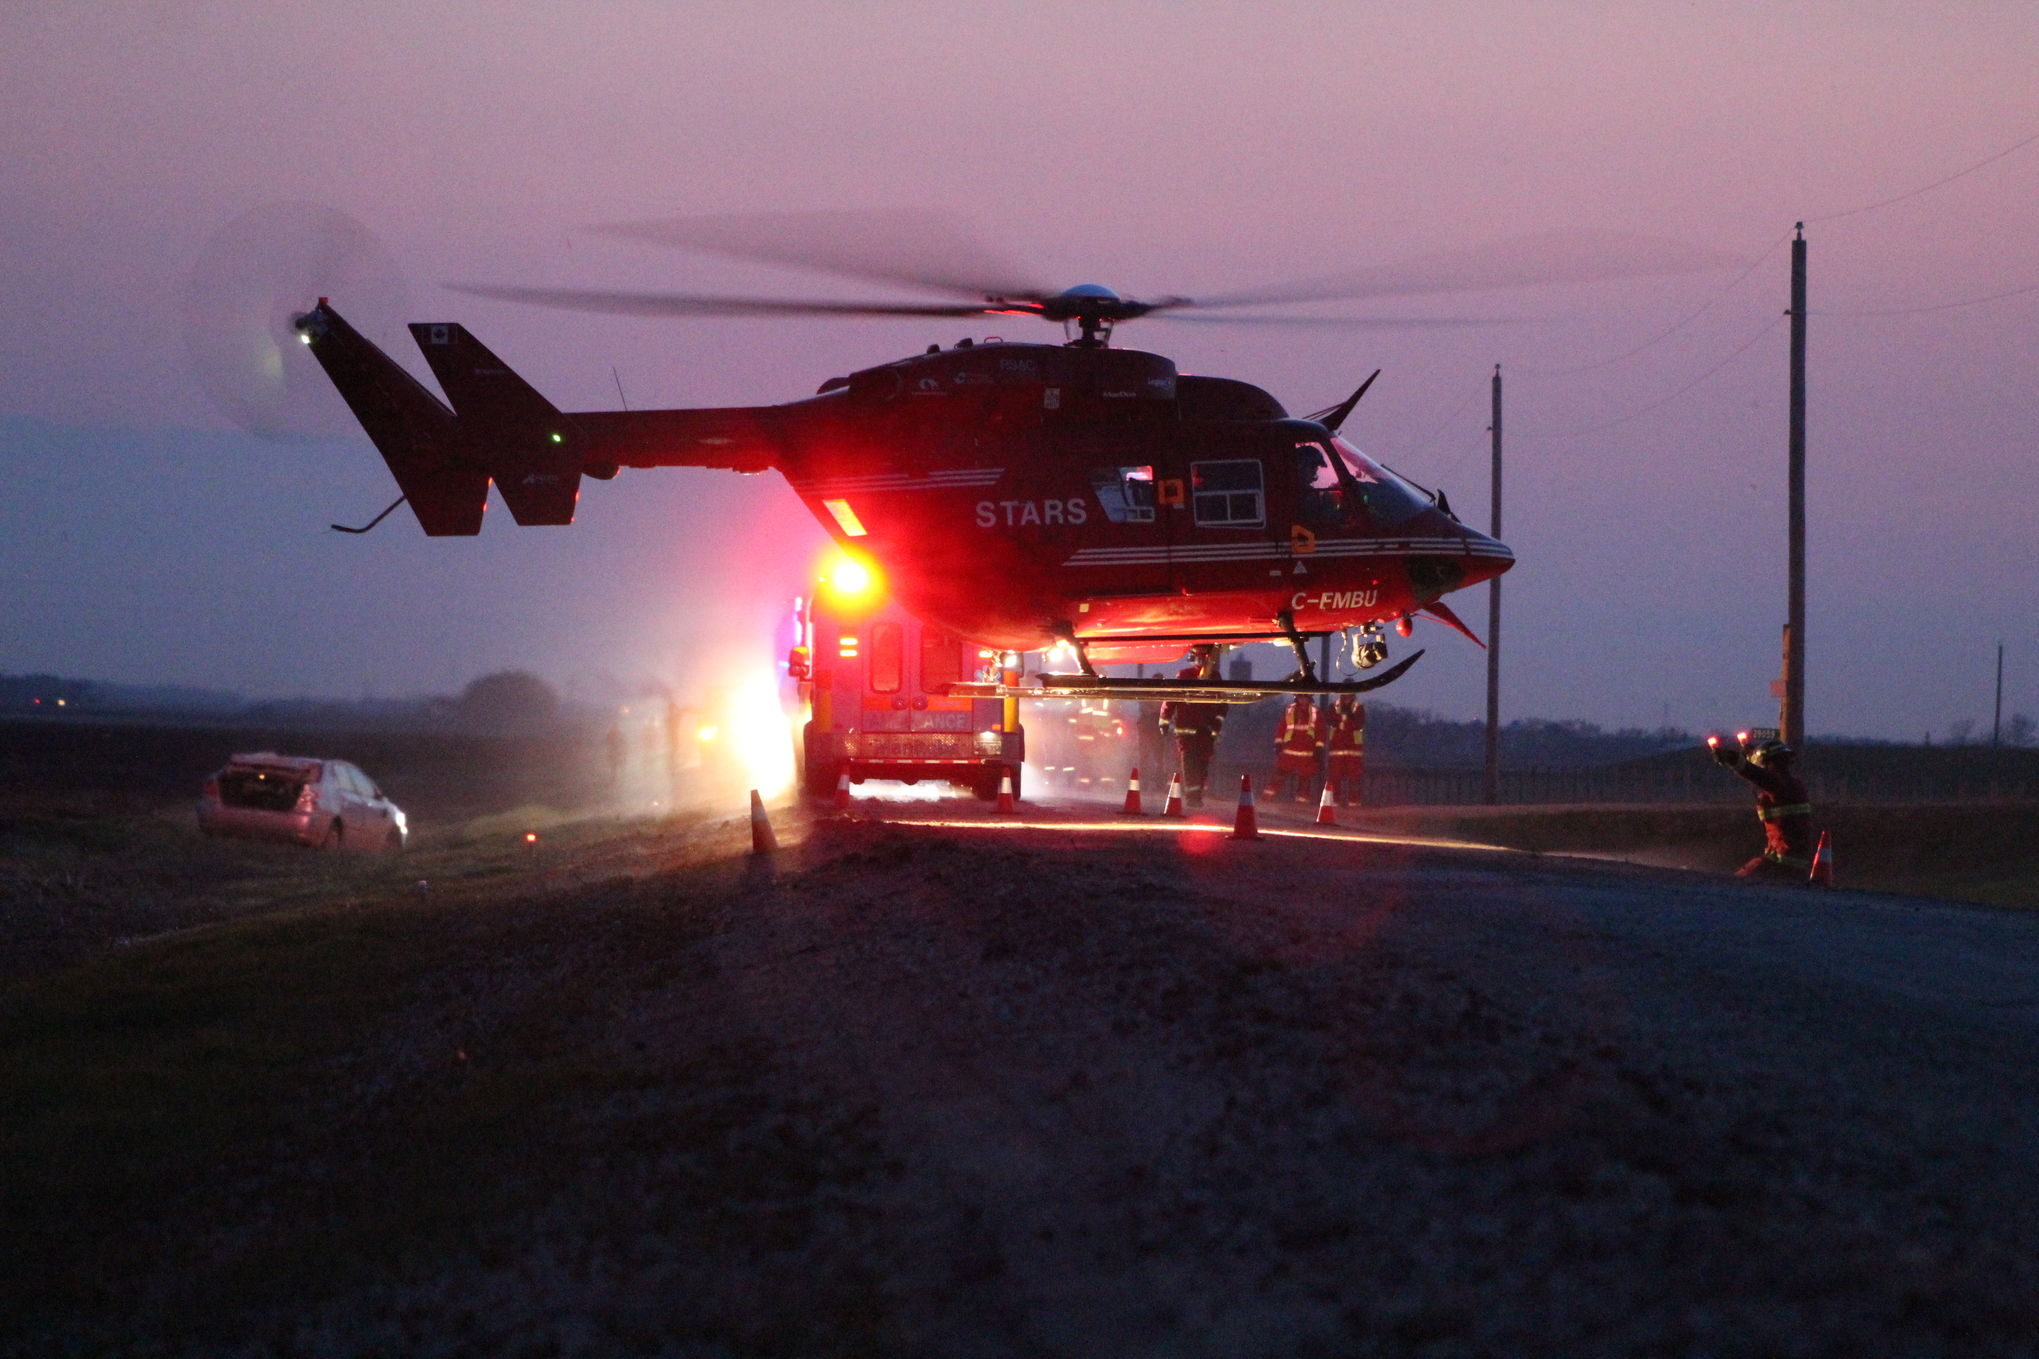 A STARS air ambulance touches down at the scene of a single vehicle rollover northwest of Mitchell Saturday evening.